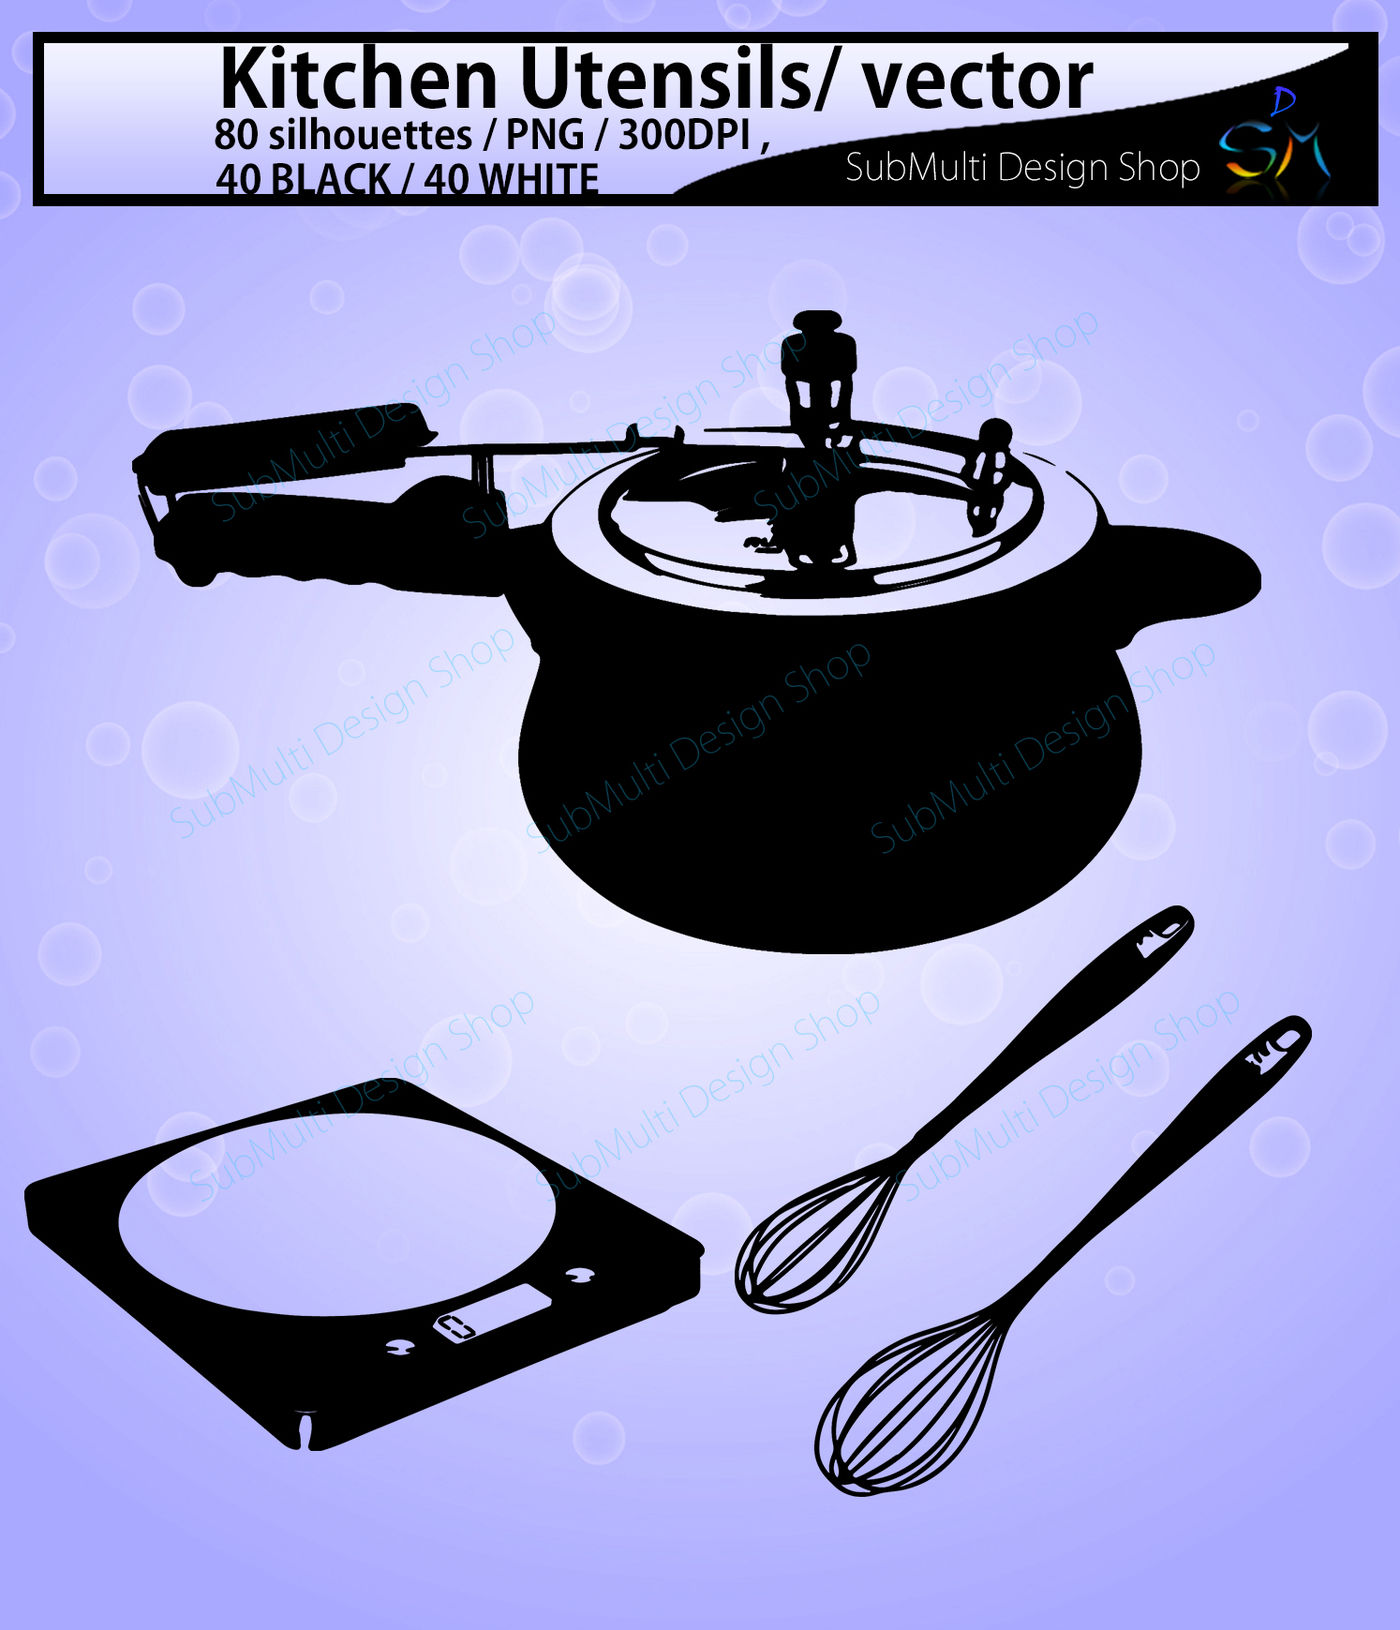 Kitchen Utensils Vector By Arcsmultidesignsshop Thehungryjpeg Com